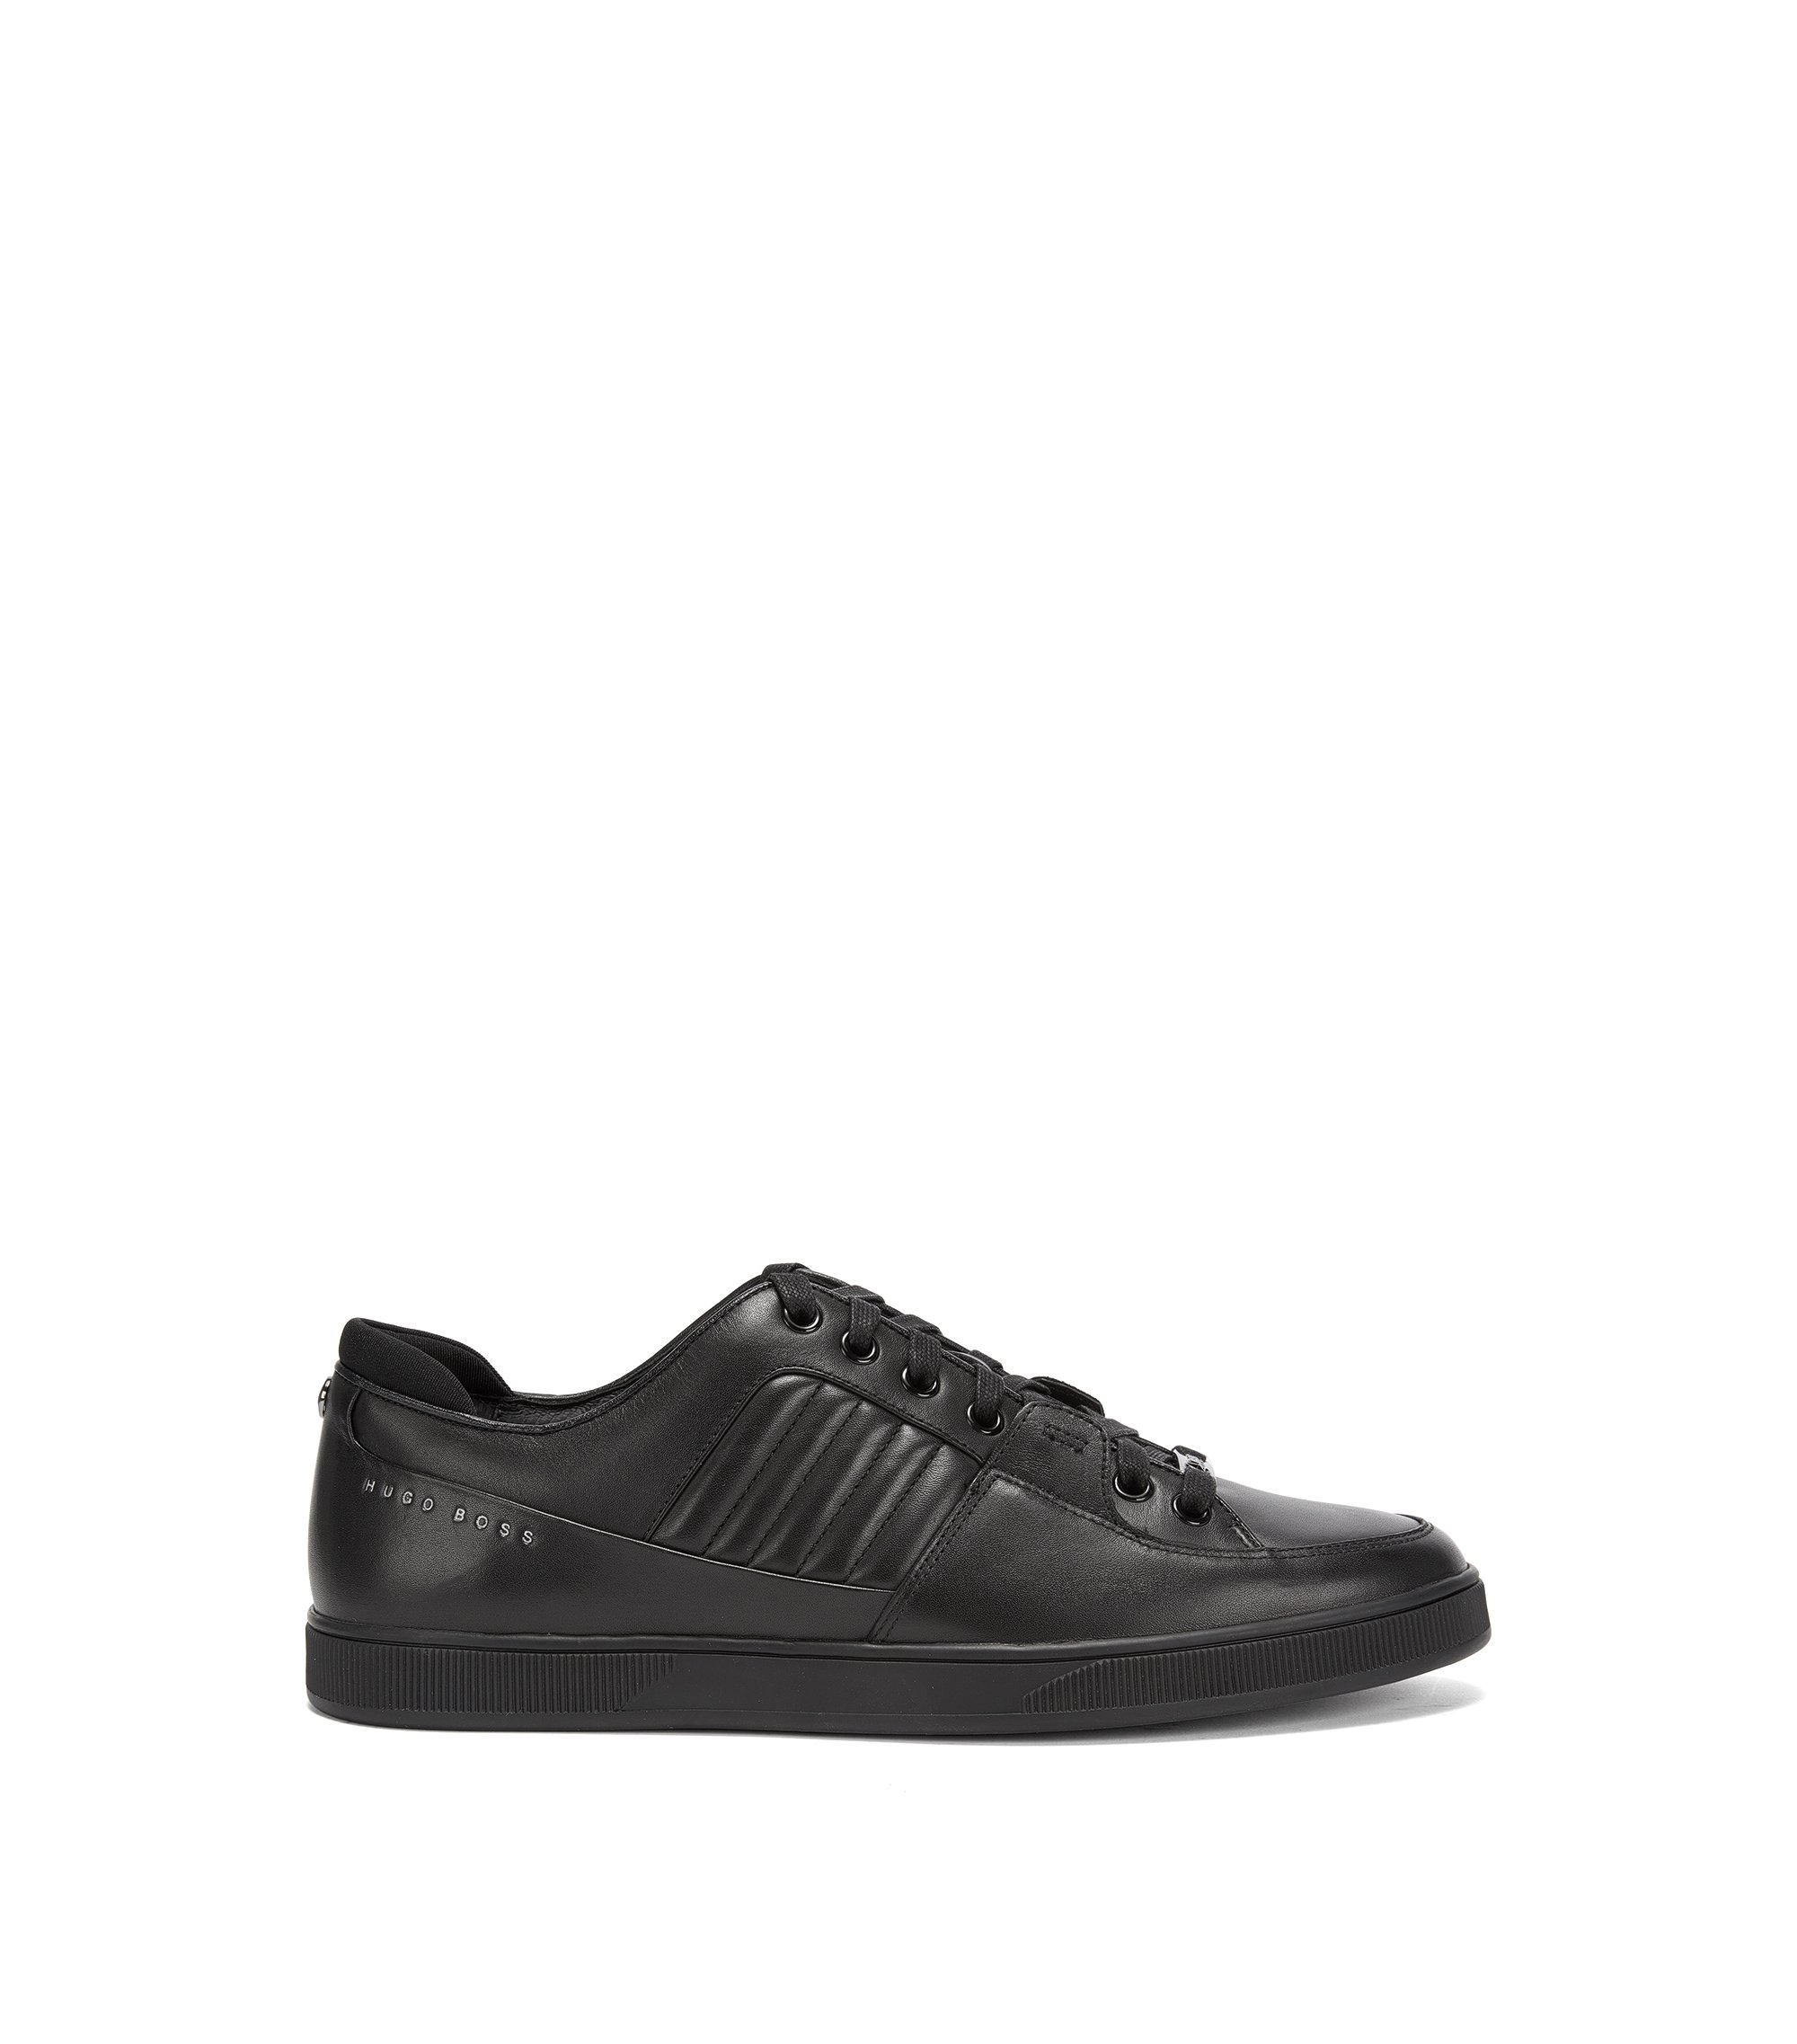 Mercedes-Benz Leather Sneaker | Across Tenn Mxmb, Black